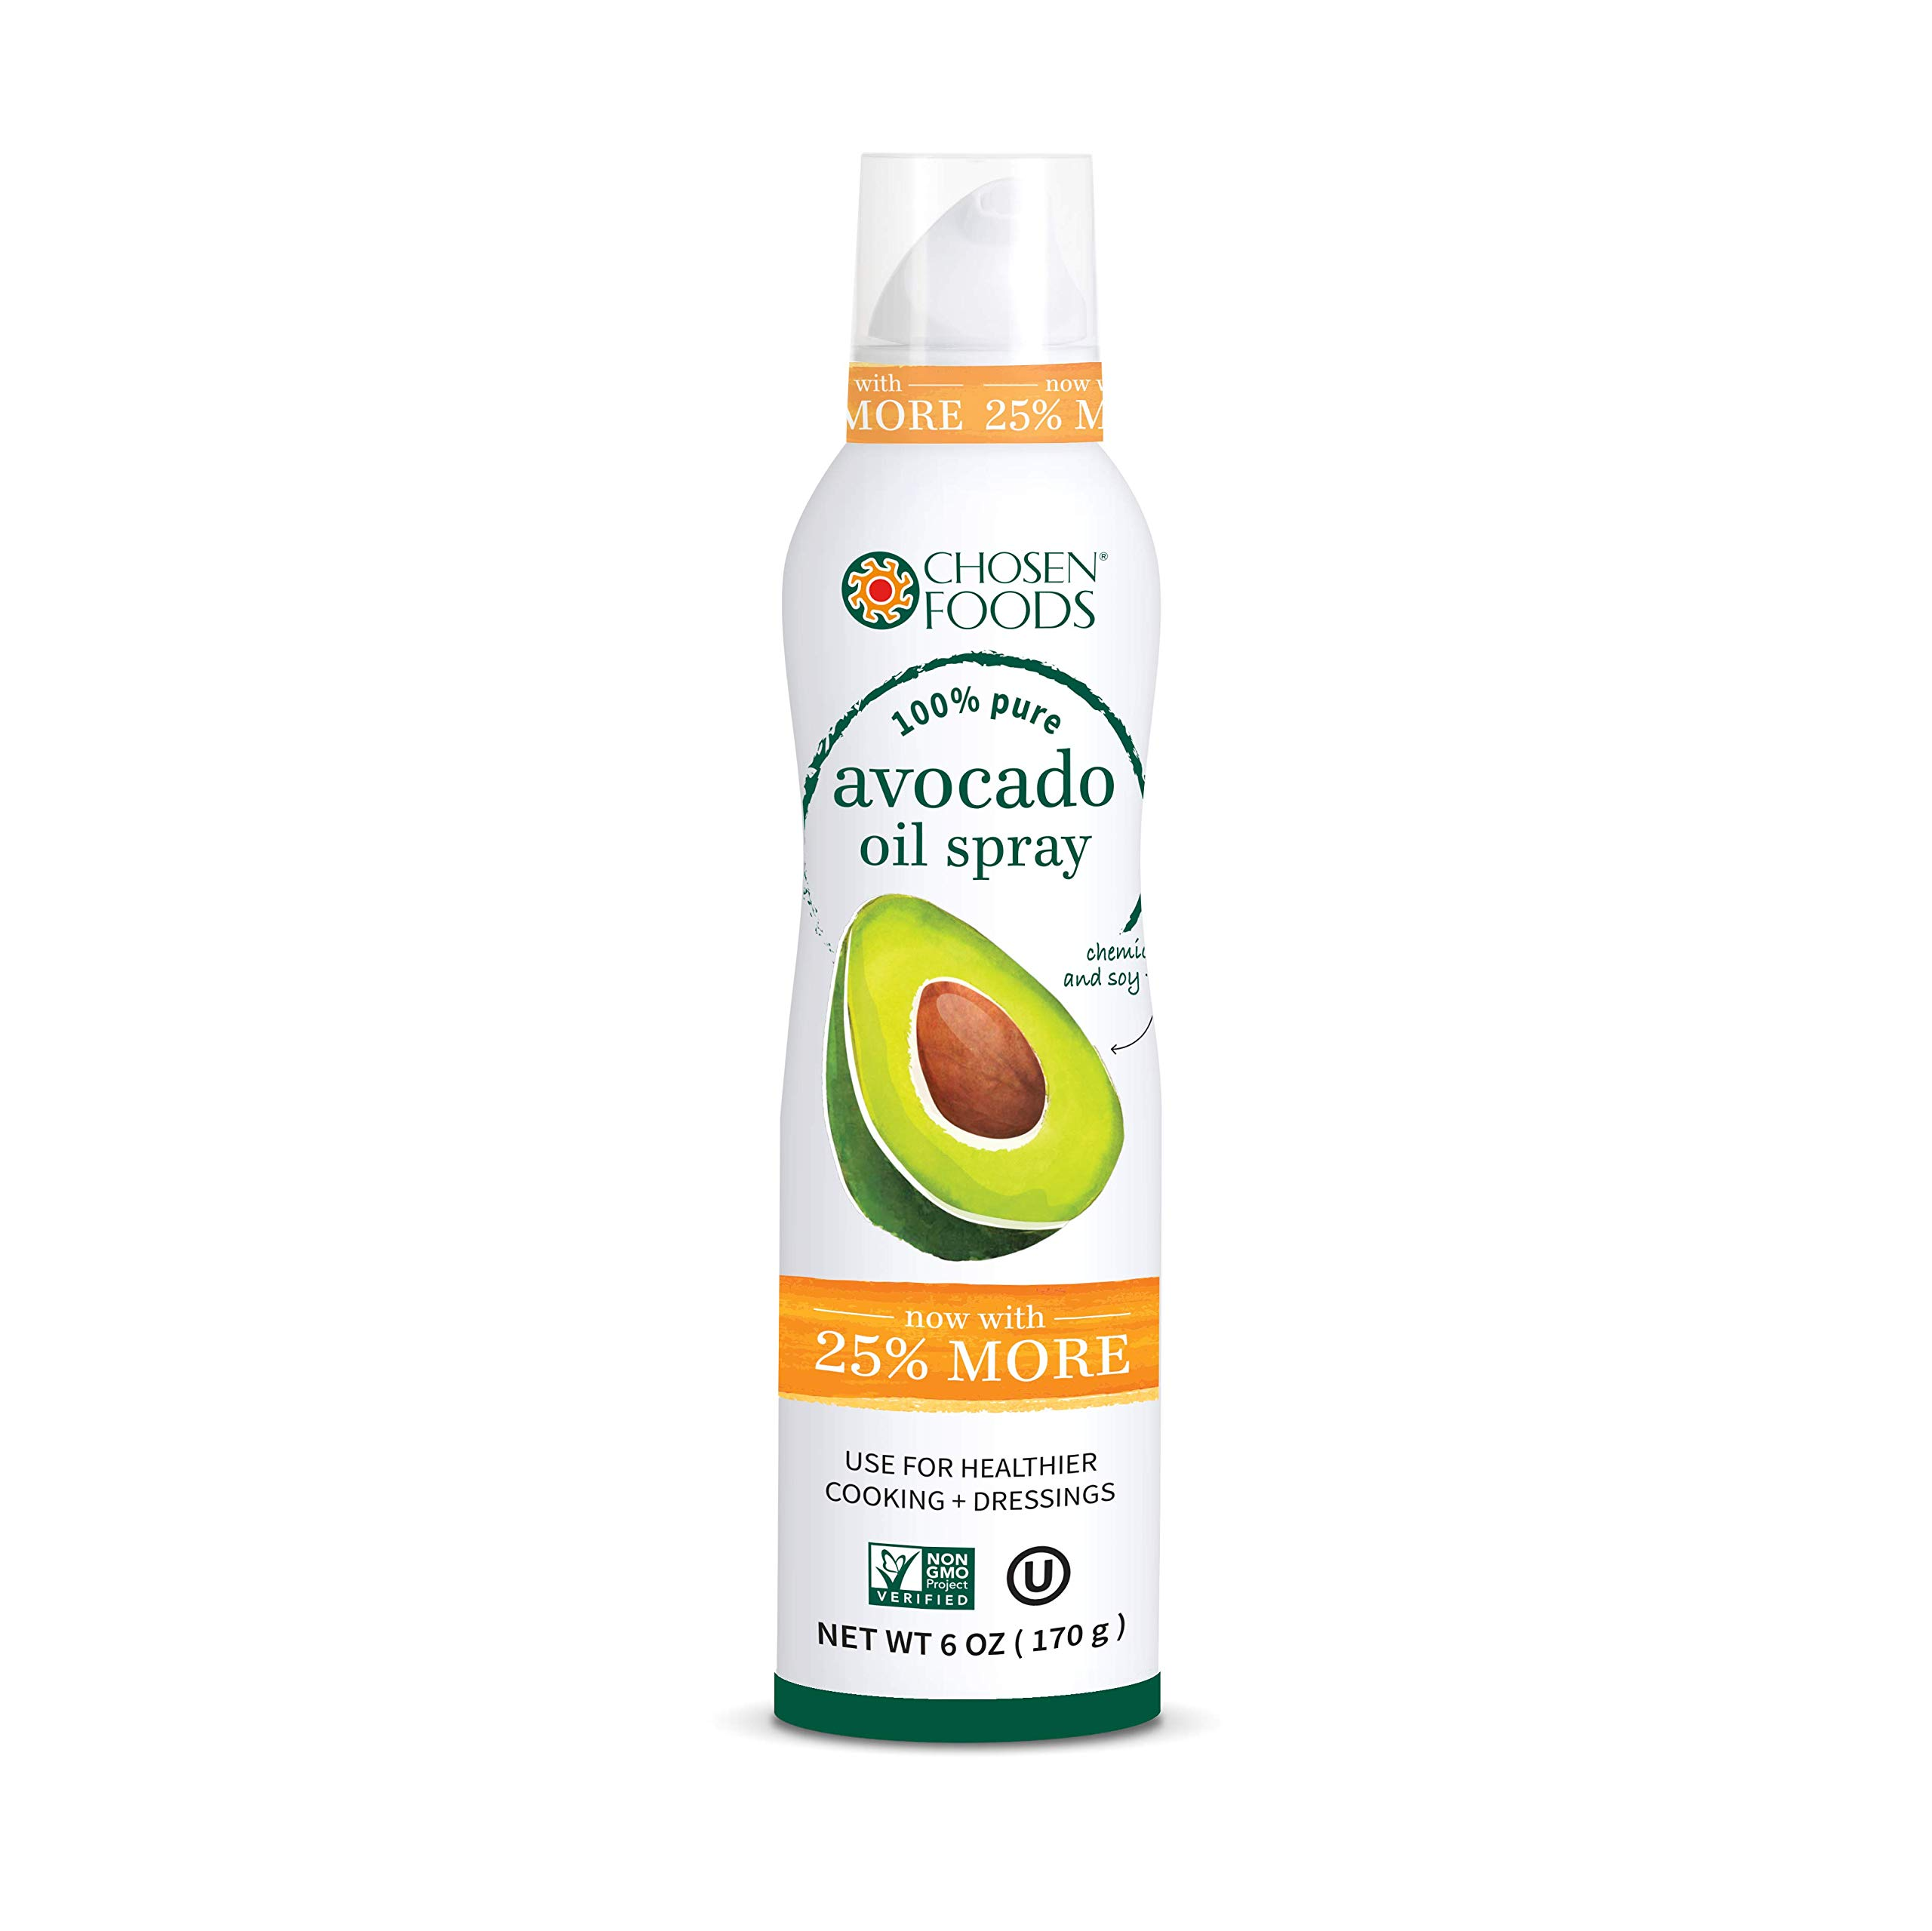 Chosen Foods 100% Pure Avocado Oil Spray 6 oz. (3 Pack), Non-GMO, 500° F Smoke Point, Propellant-Free, Air Pressure Only for High-Heat Cooking, Baking and Frying (3) by Chosen Foods